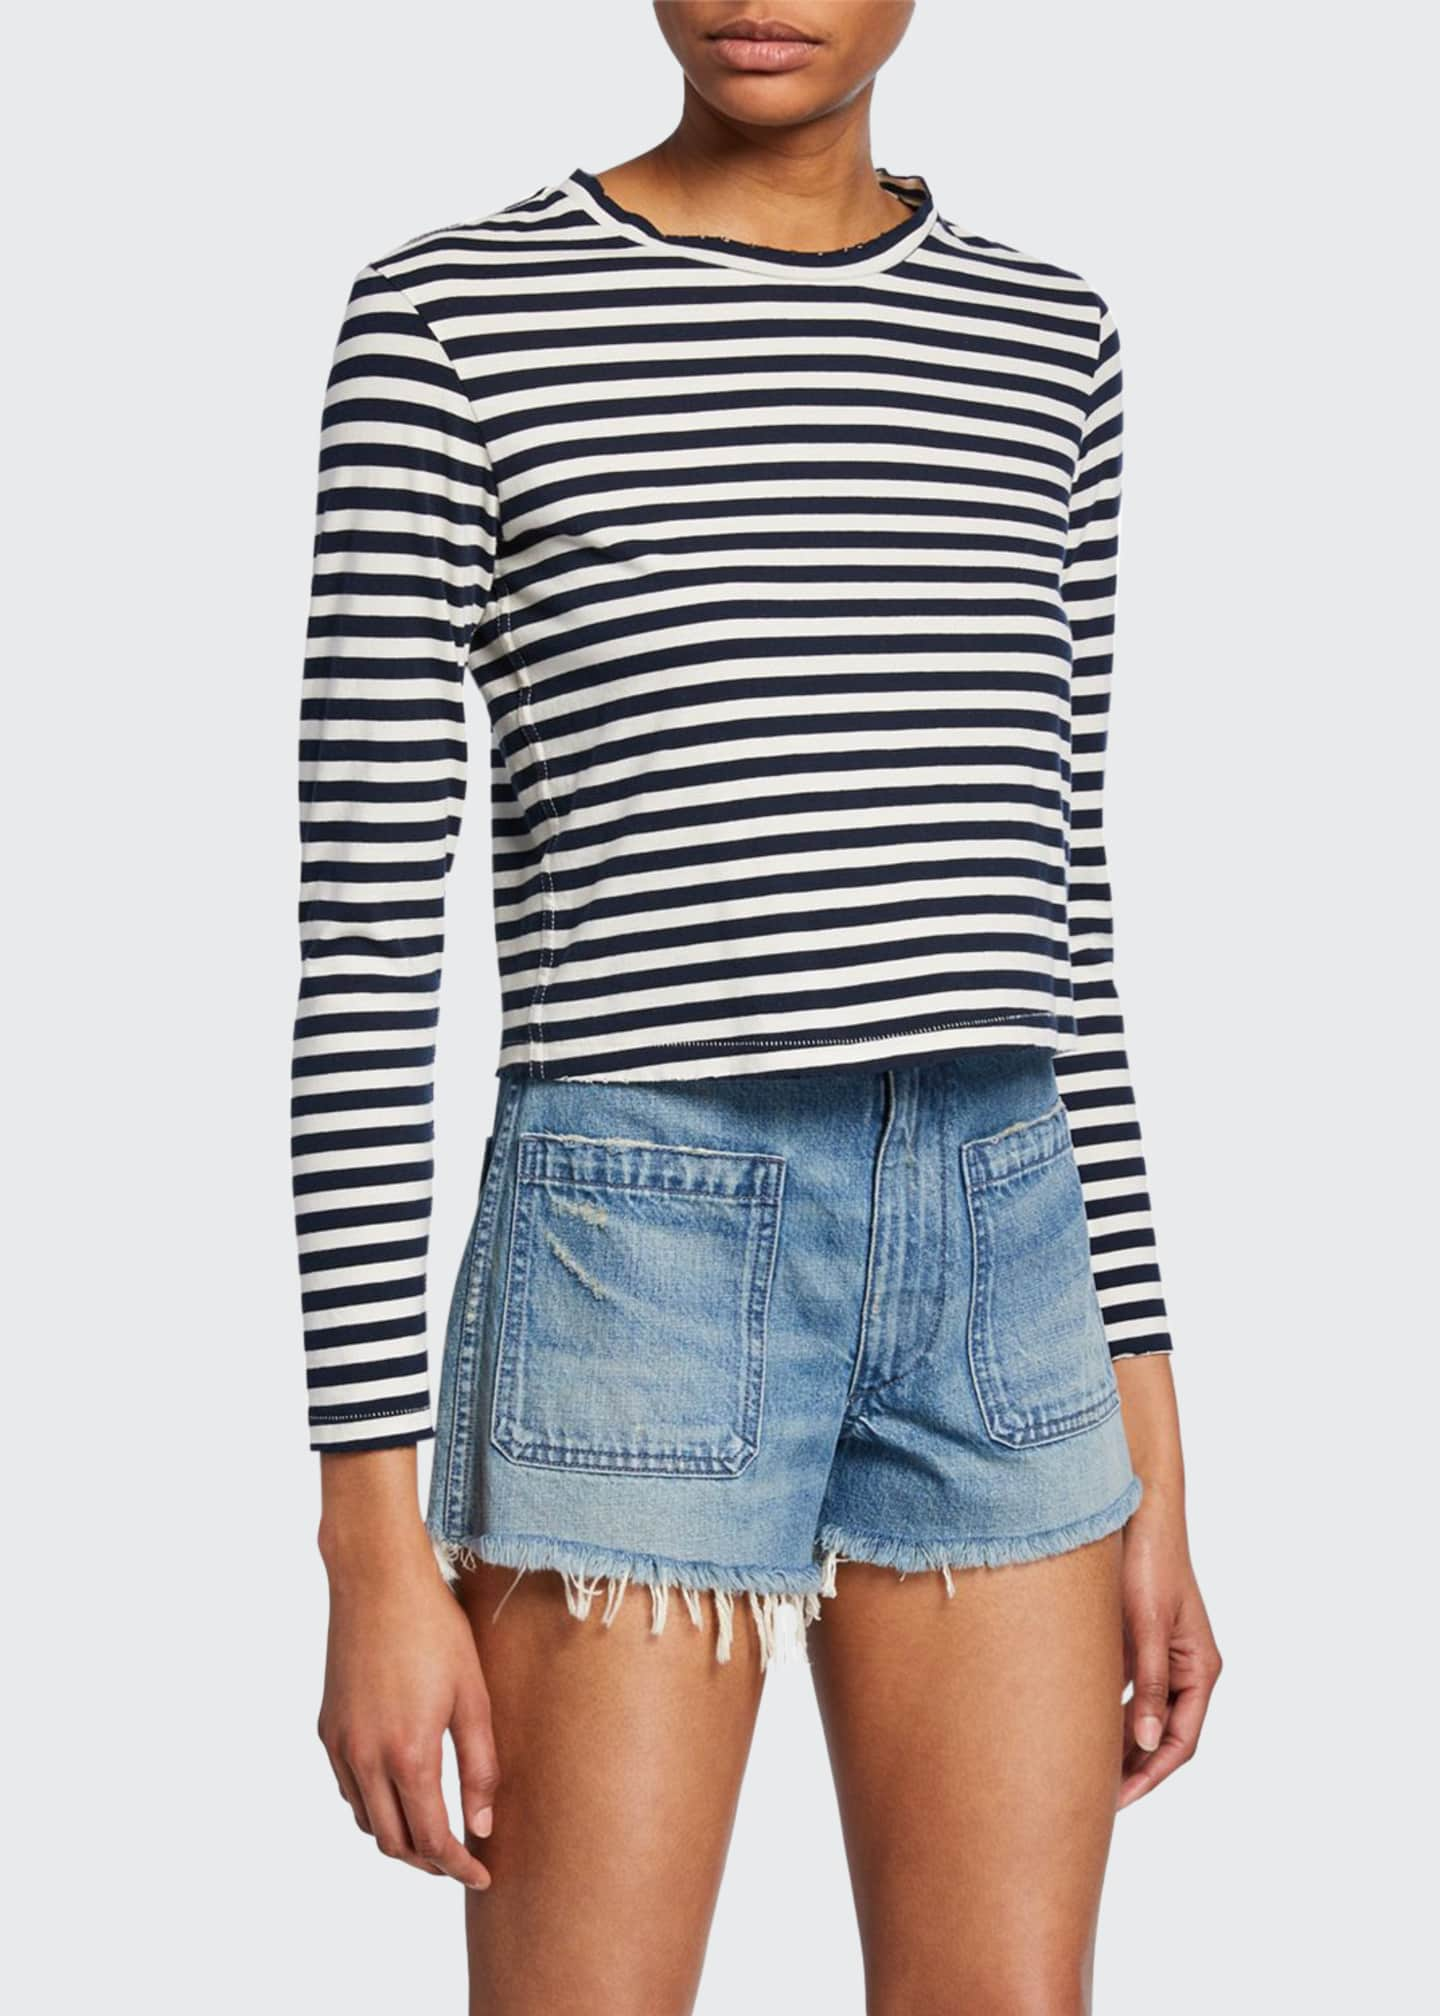 AMO Denim Babe Striped Long-Sleeve Tee